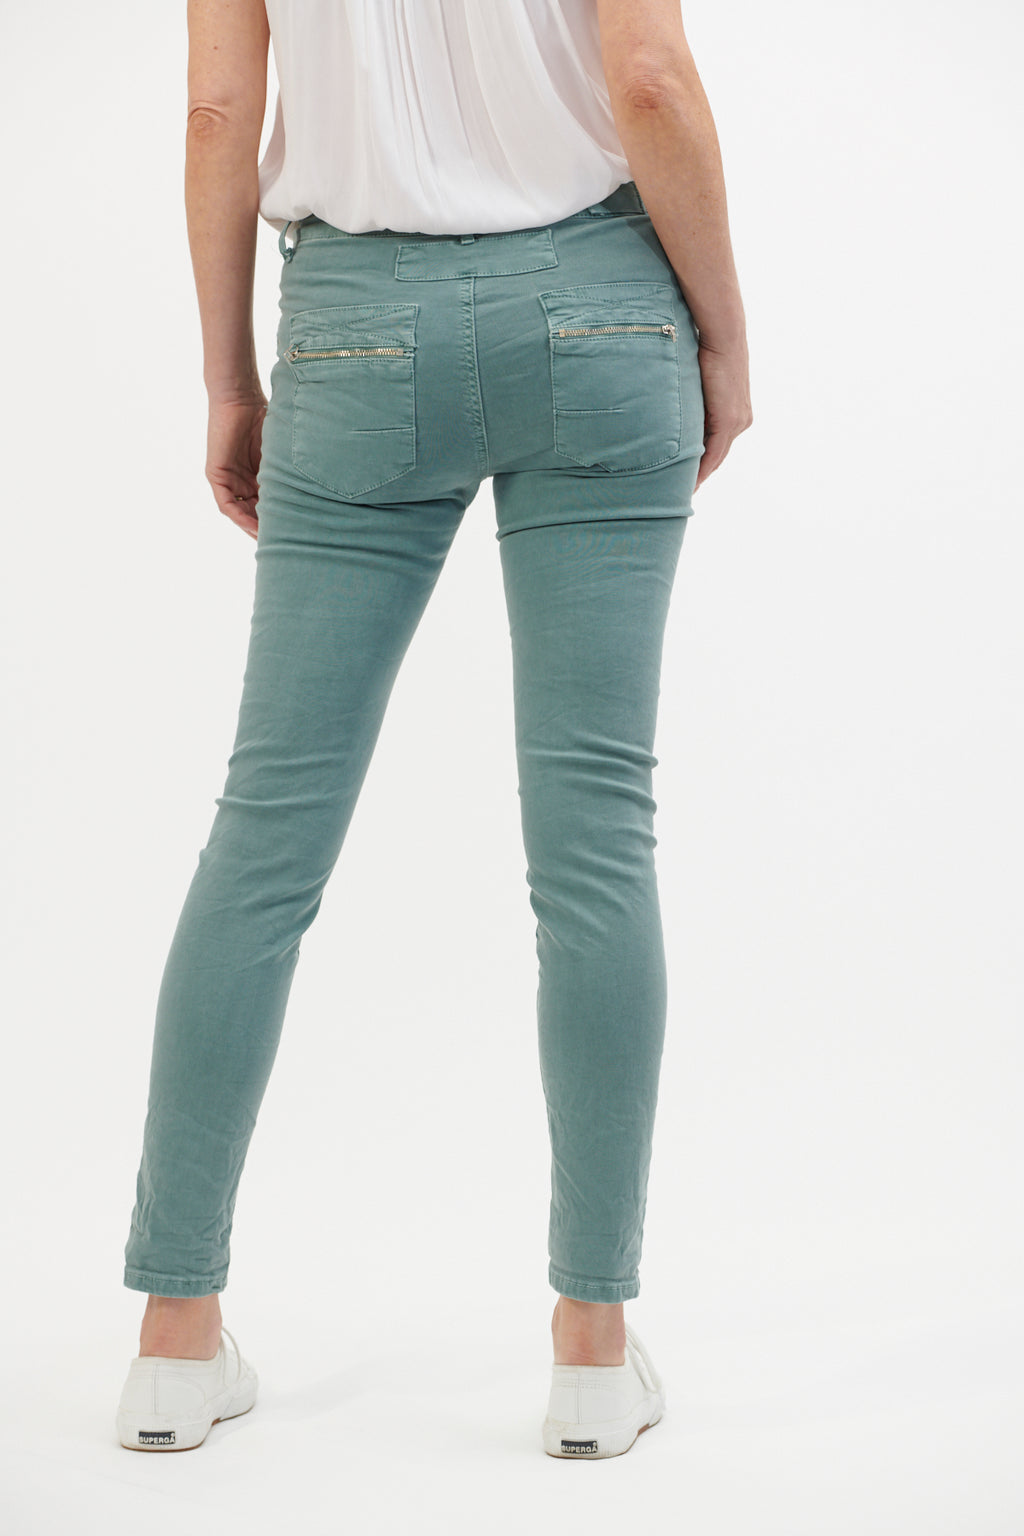 Italian Star Jeans Aqua Green Shade